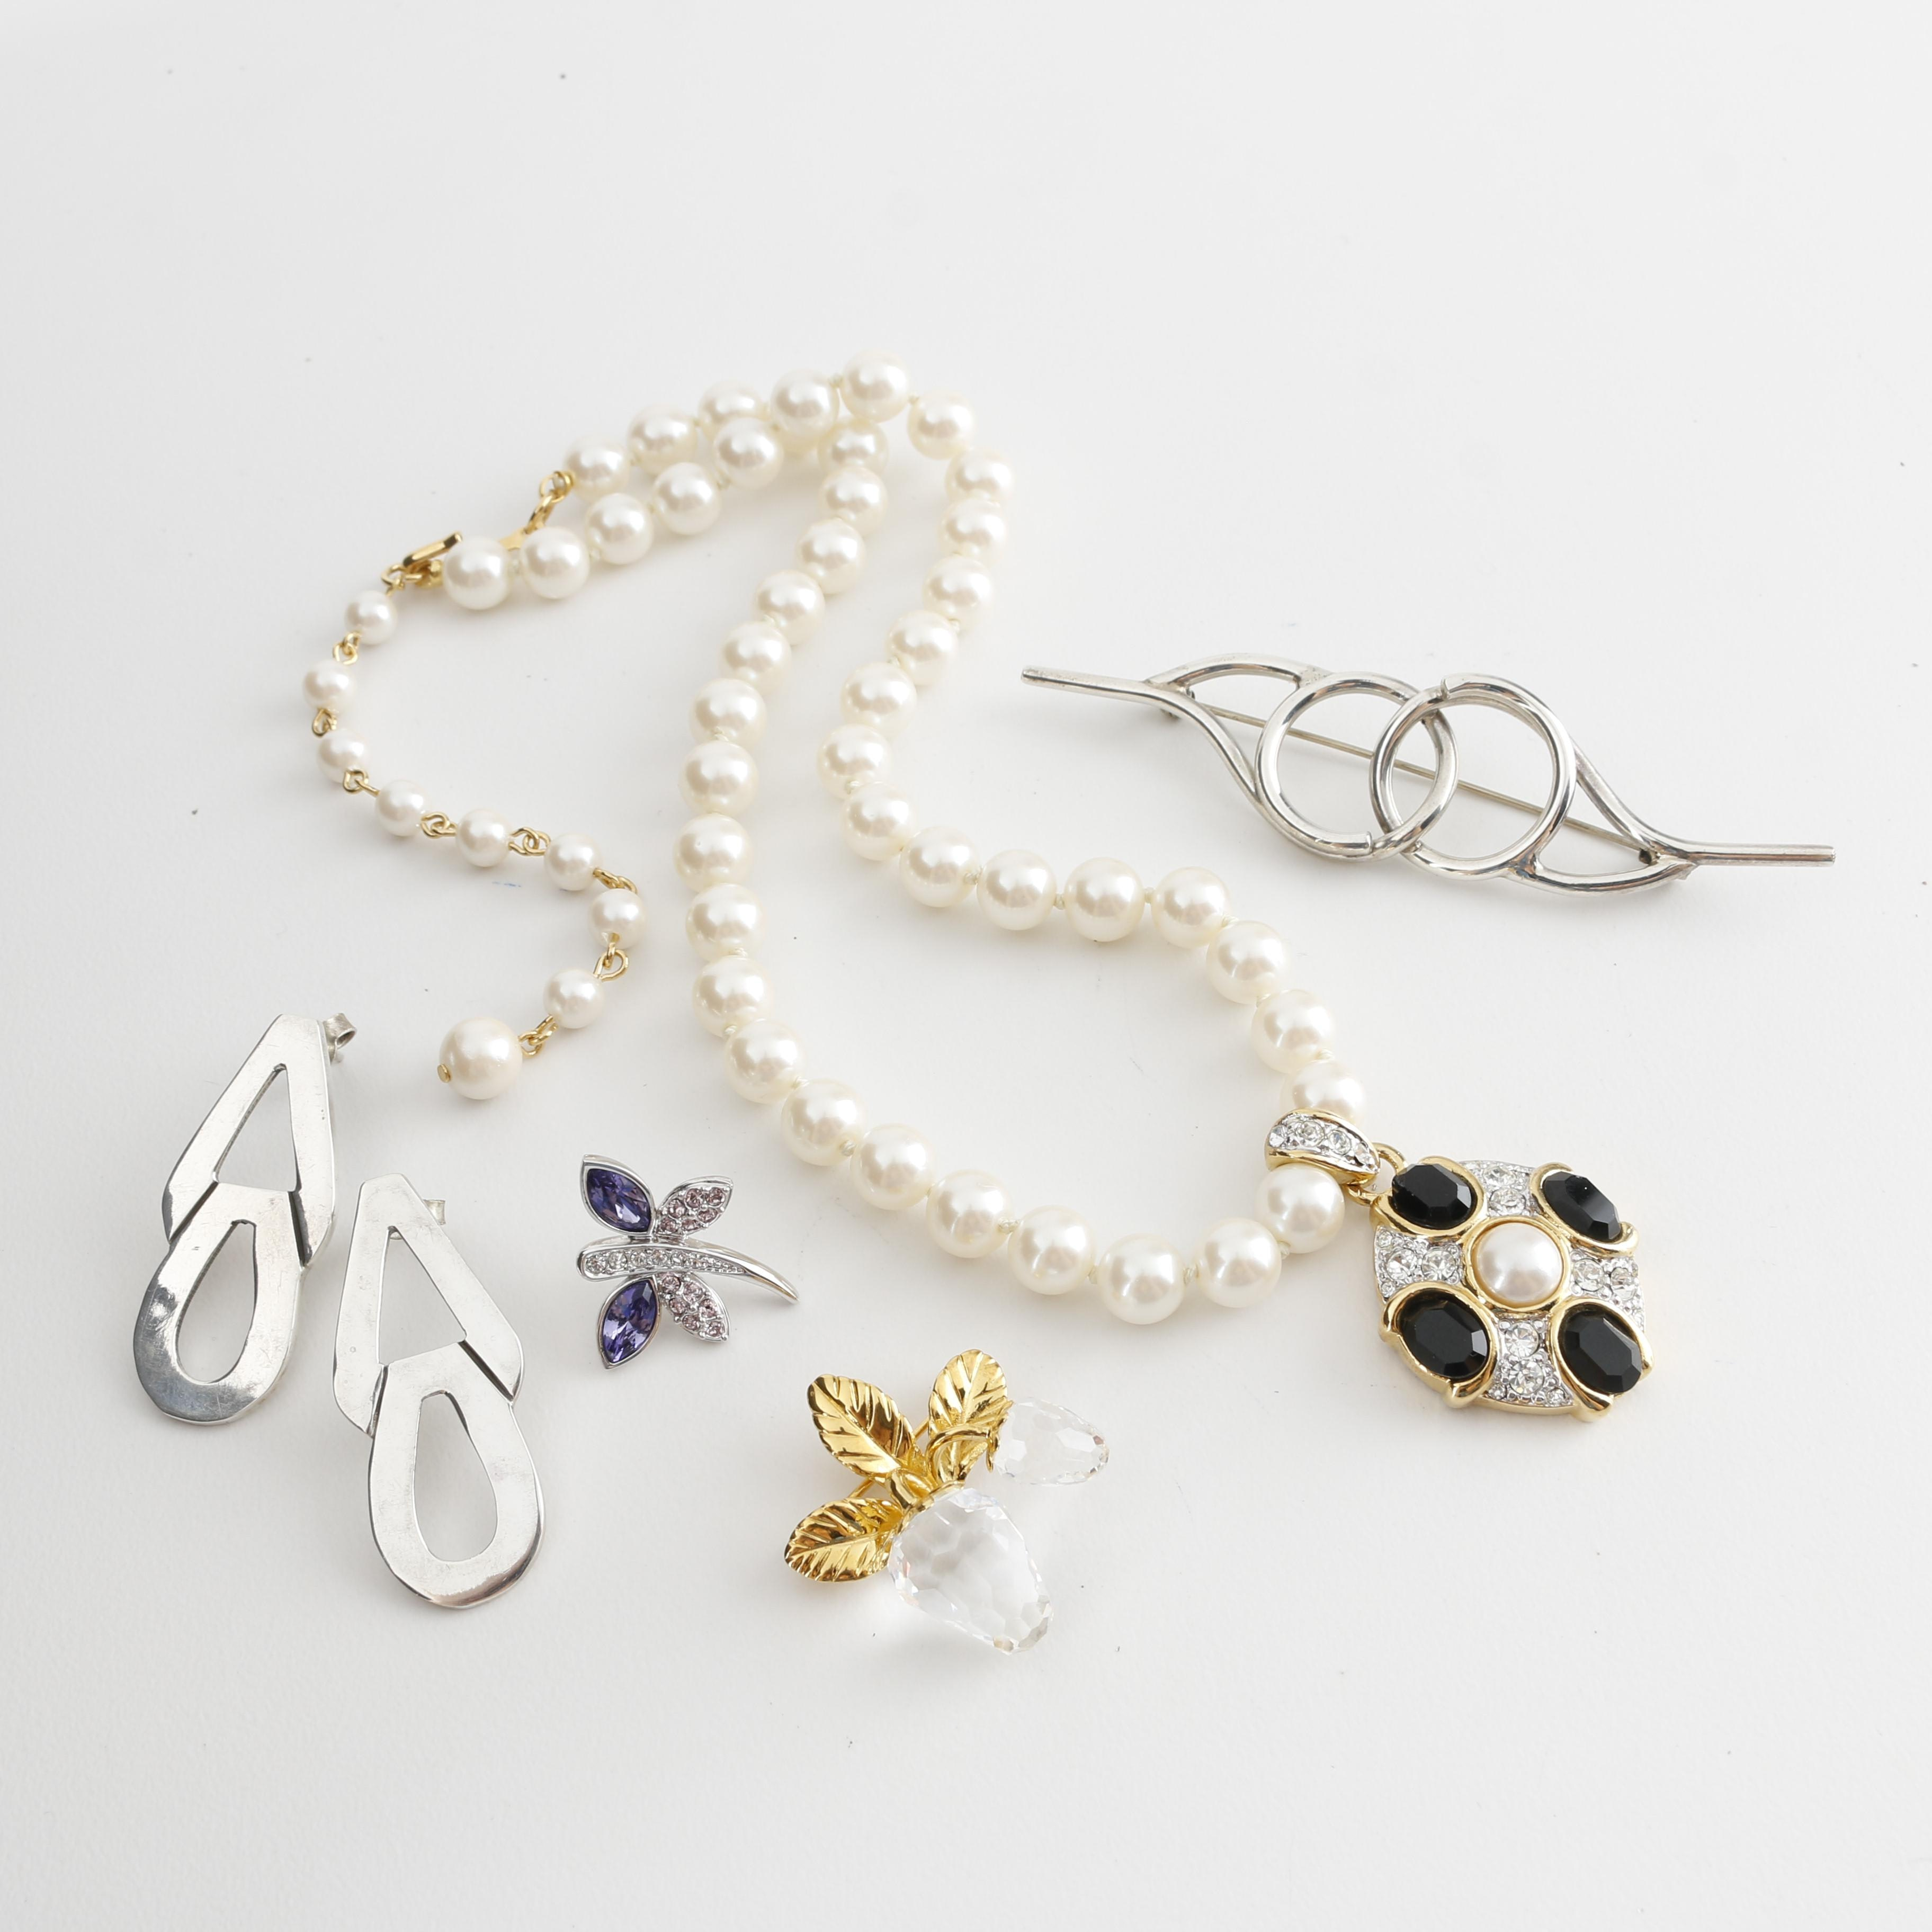 Fashion Jewelry Assortment Including Swarovski and Sterling Silver